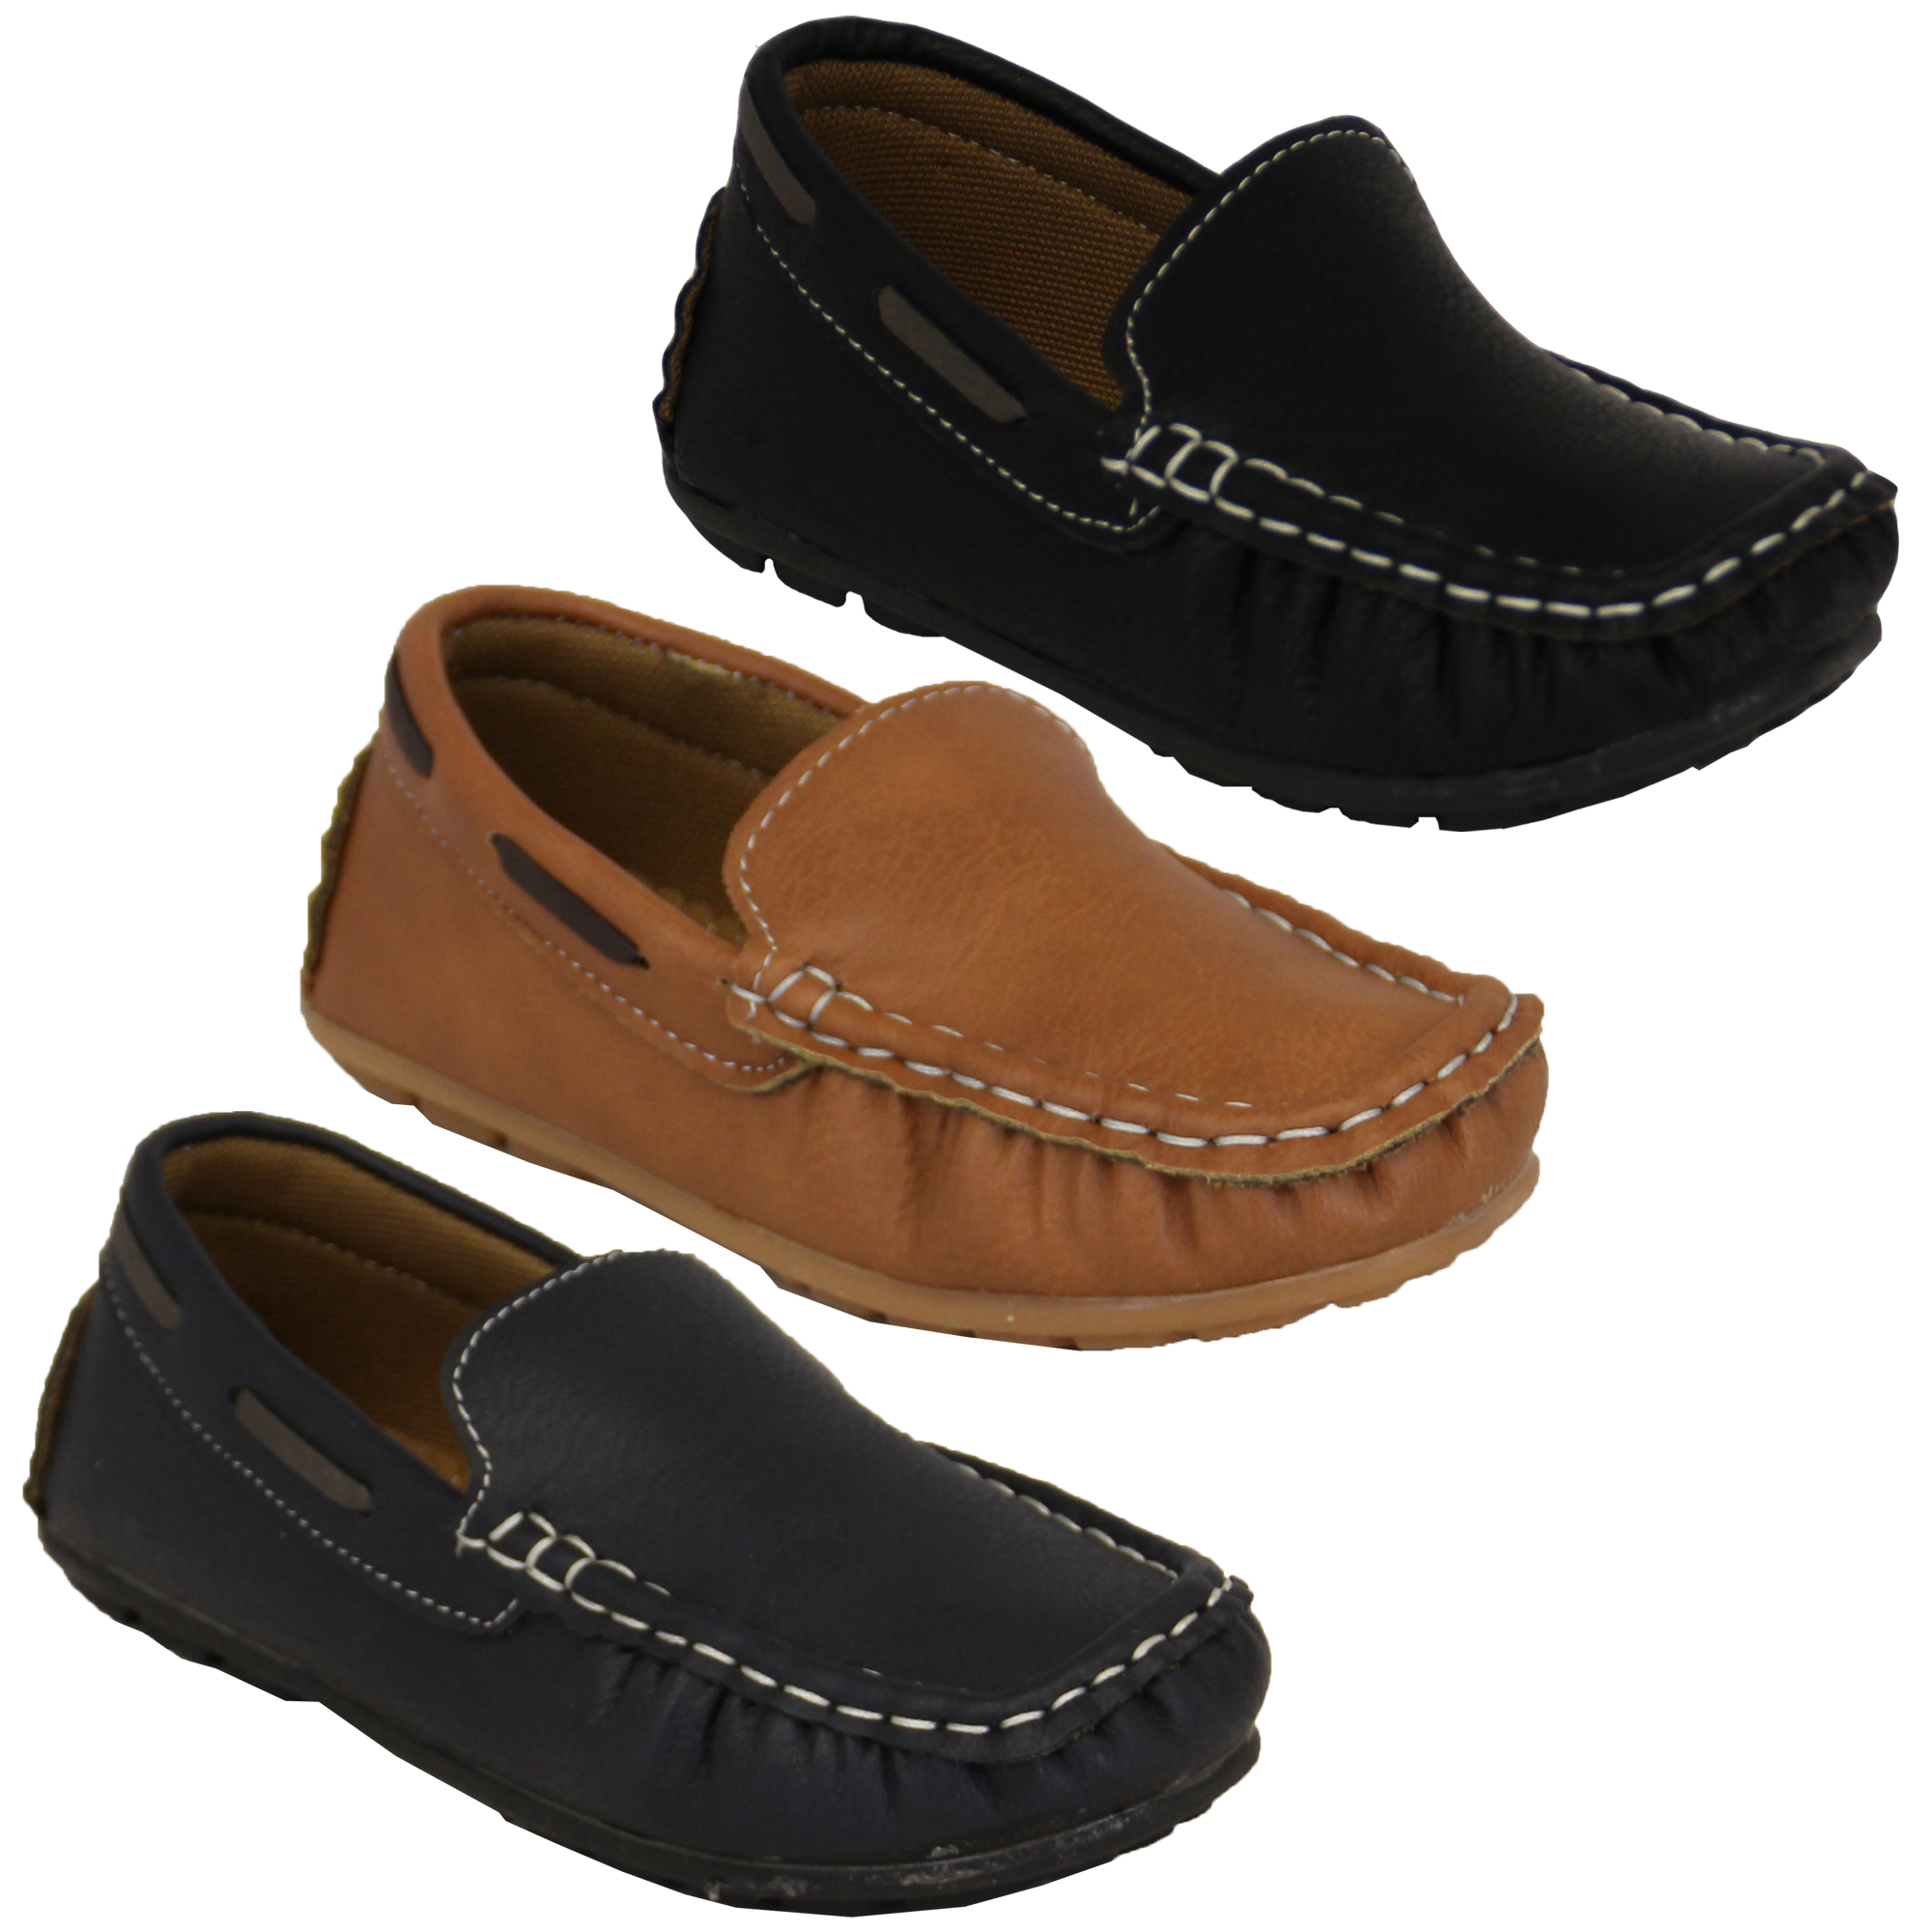 Boys Moccasins Kids Leather Look Shoes Driving Loafers Slip On Boat Deck  Casual   eBay